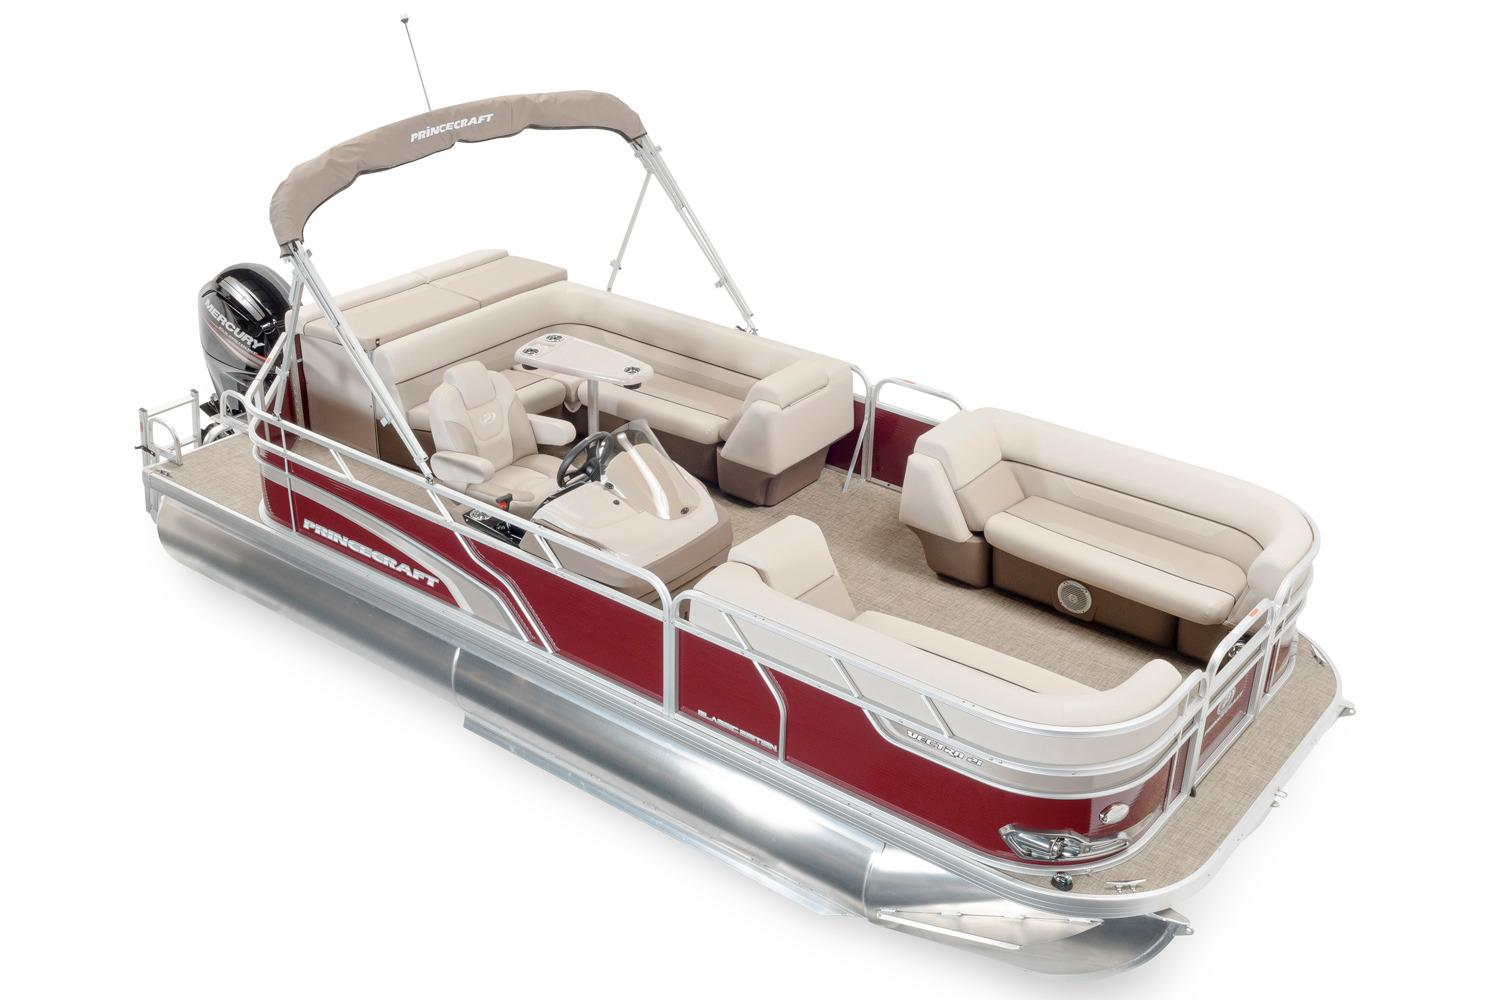 2017 Princecraft Vectra 21 in Center Ossipee, New Hampshire